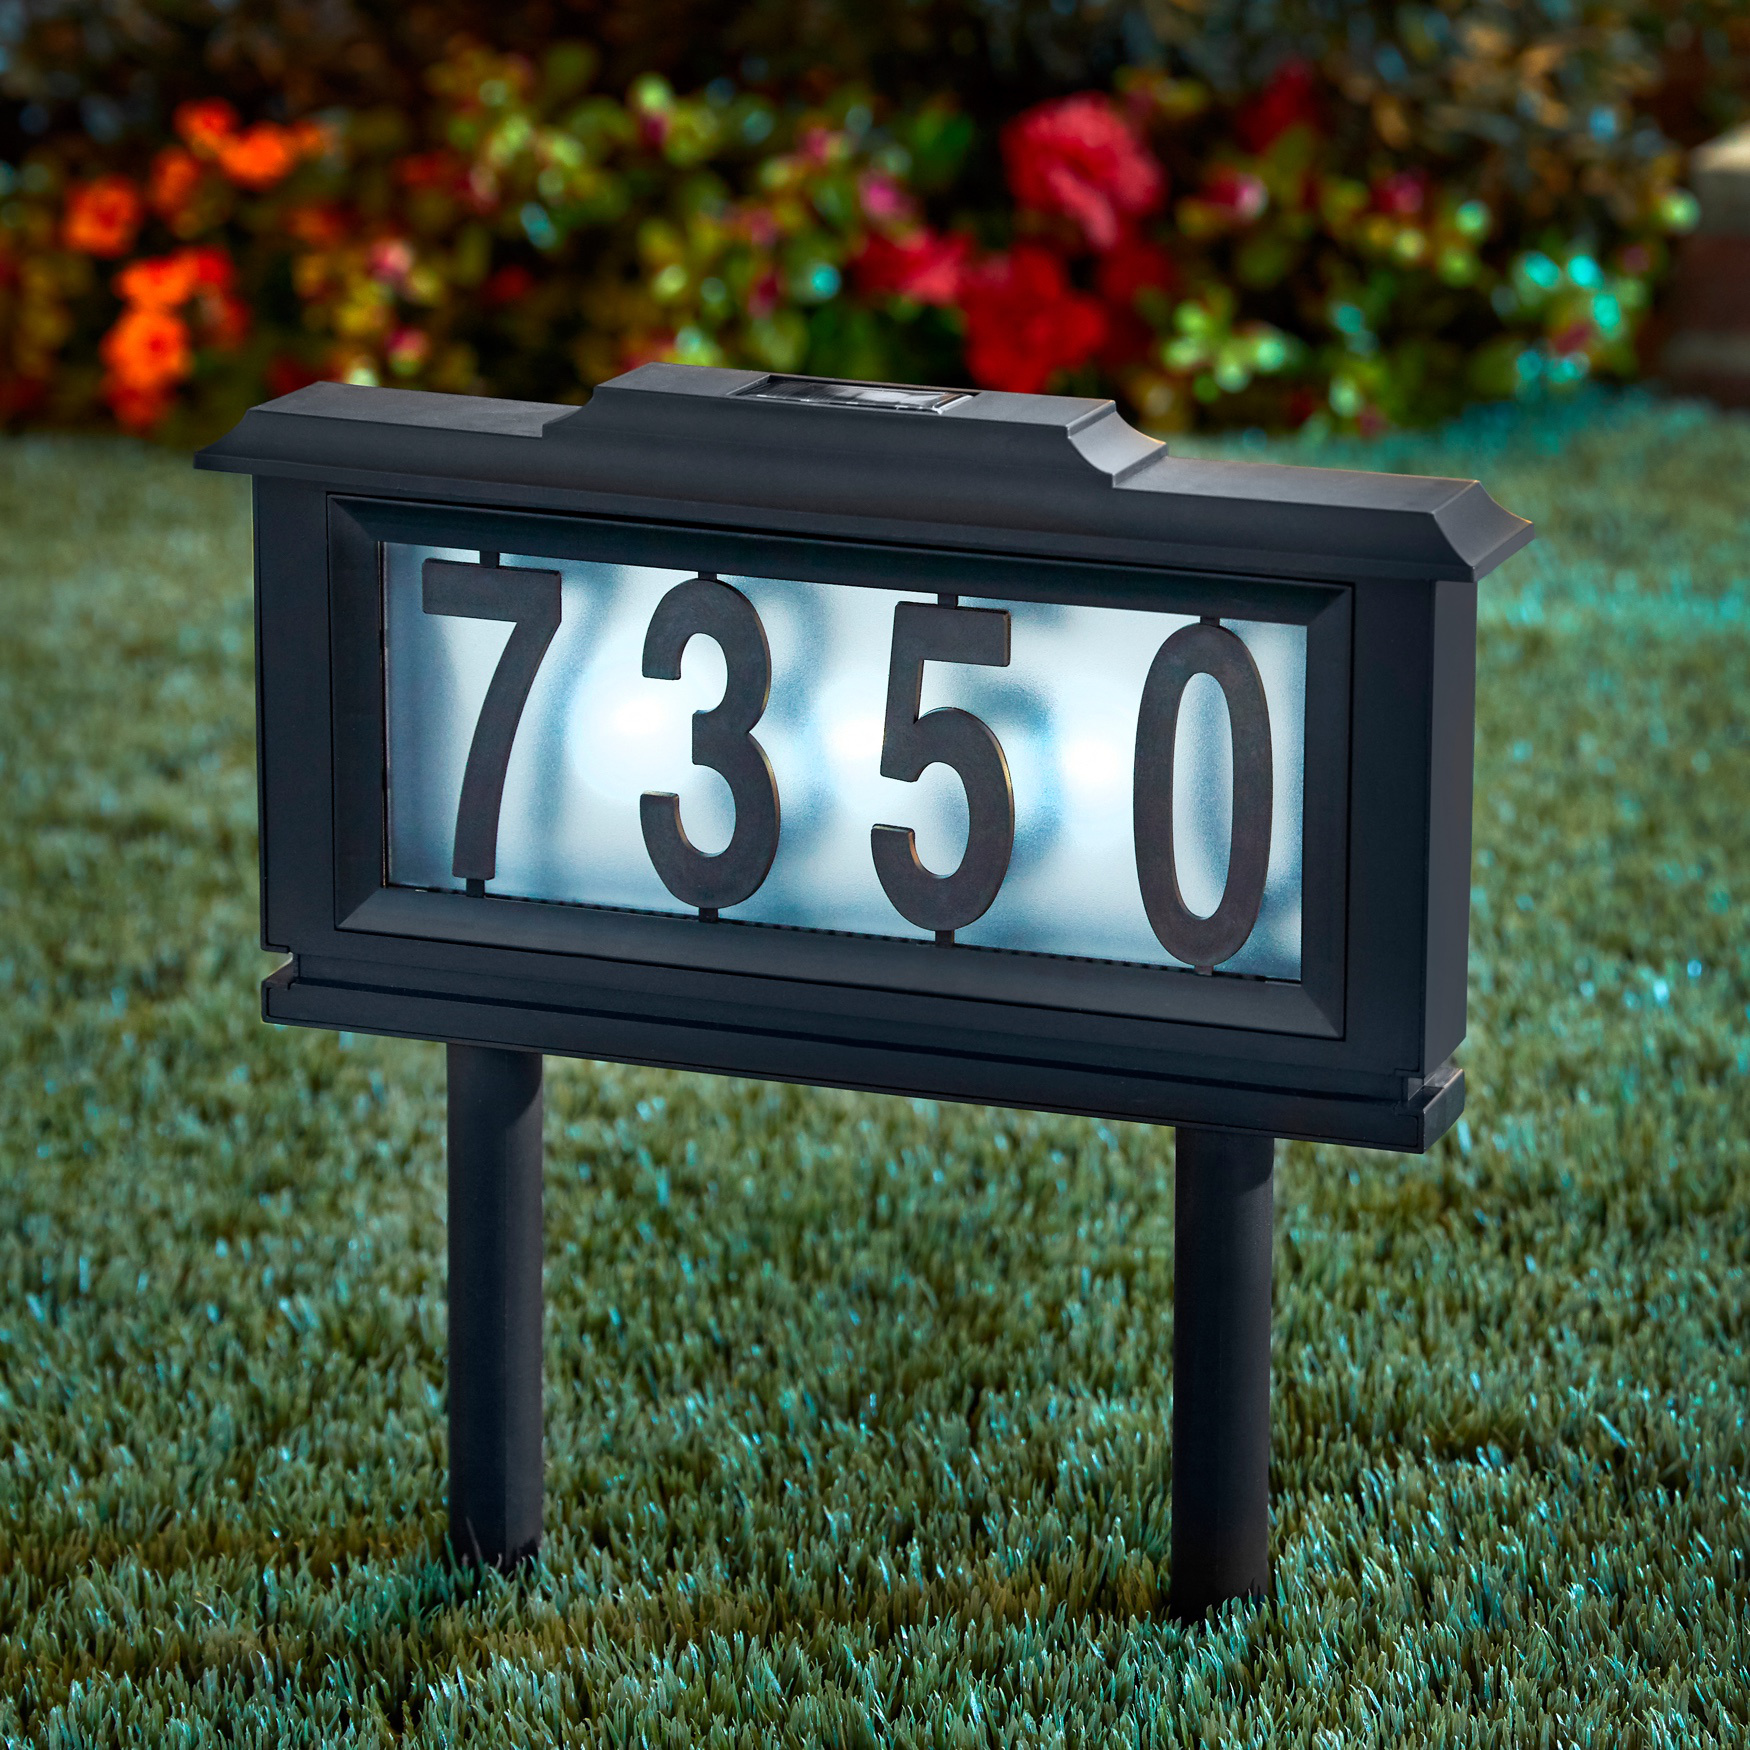 Solar Light House Number Plaque, BLACK